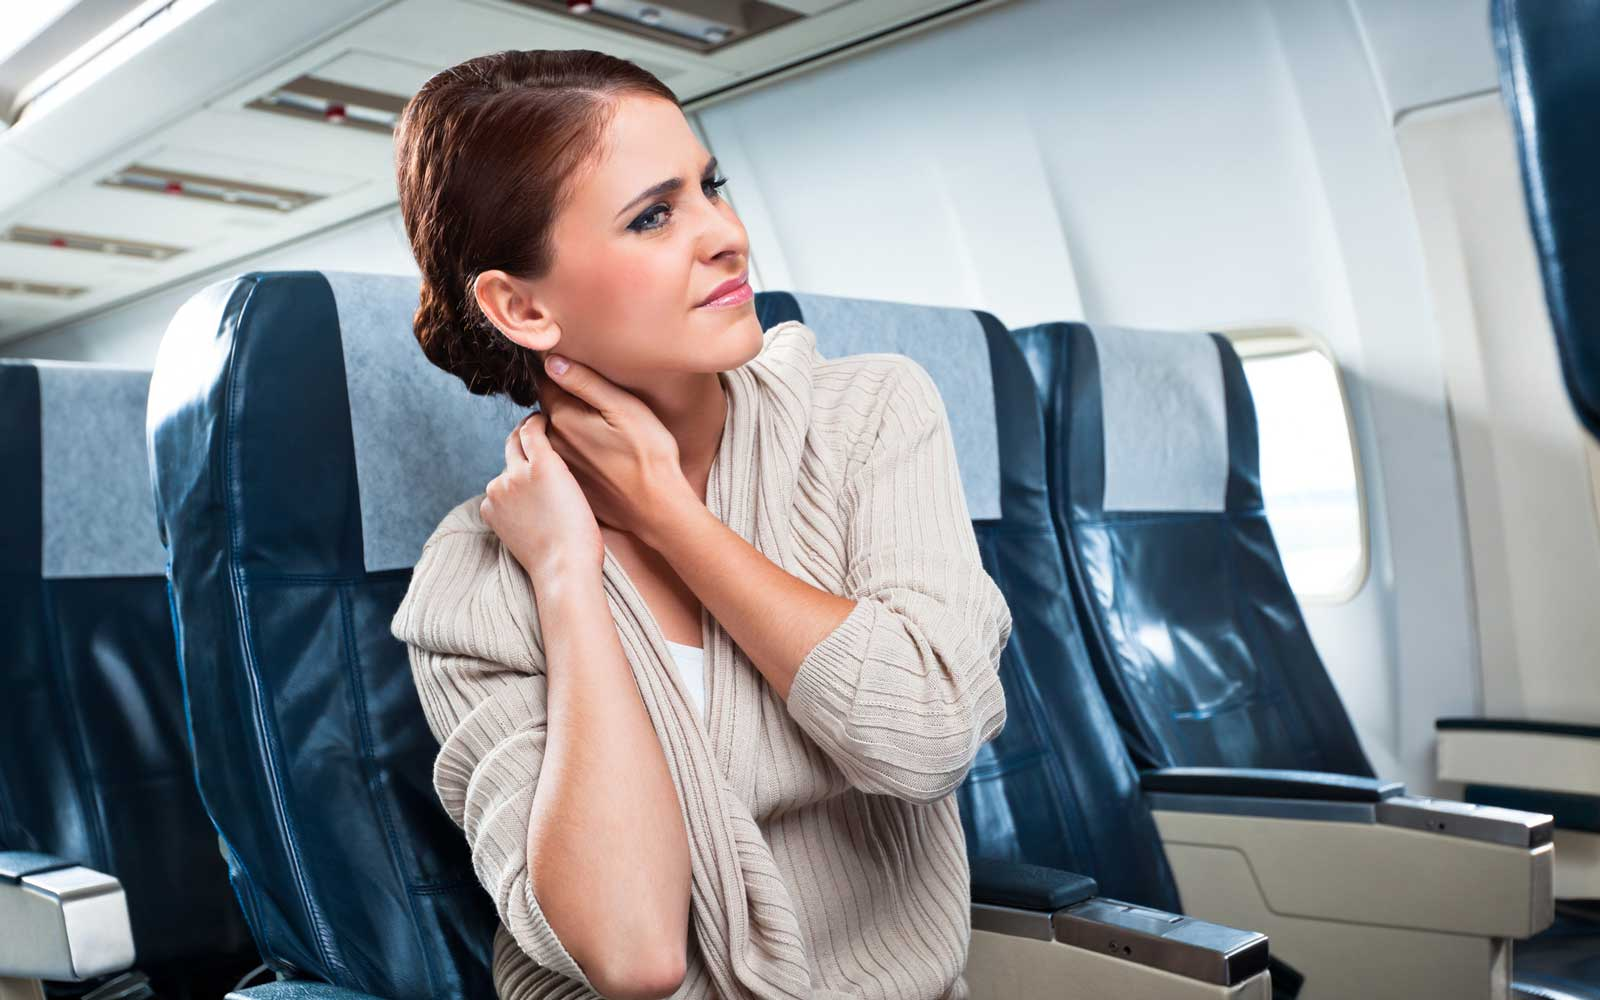 Health problem on an airplane